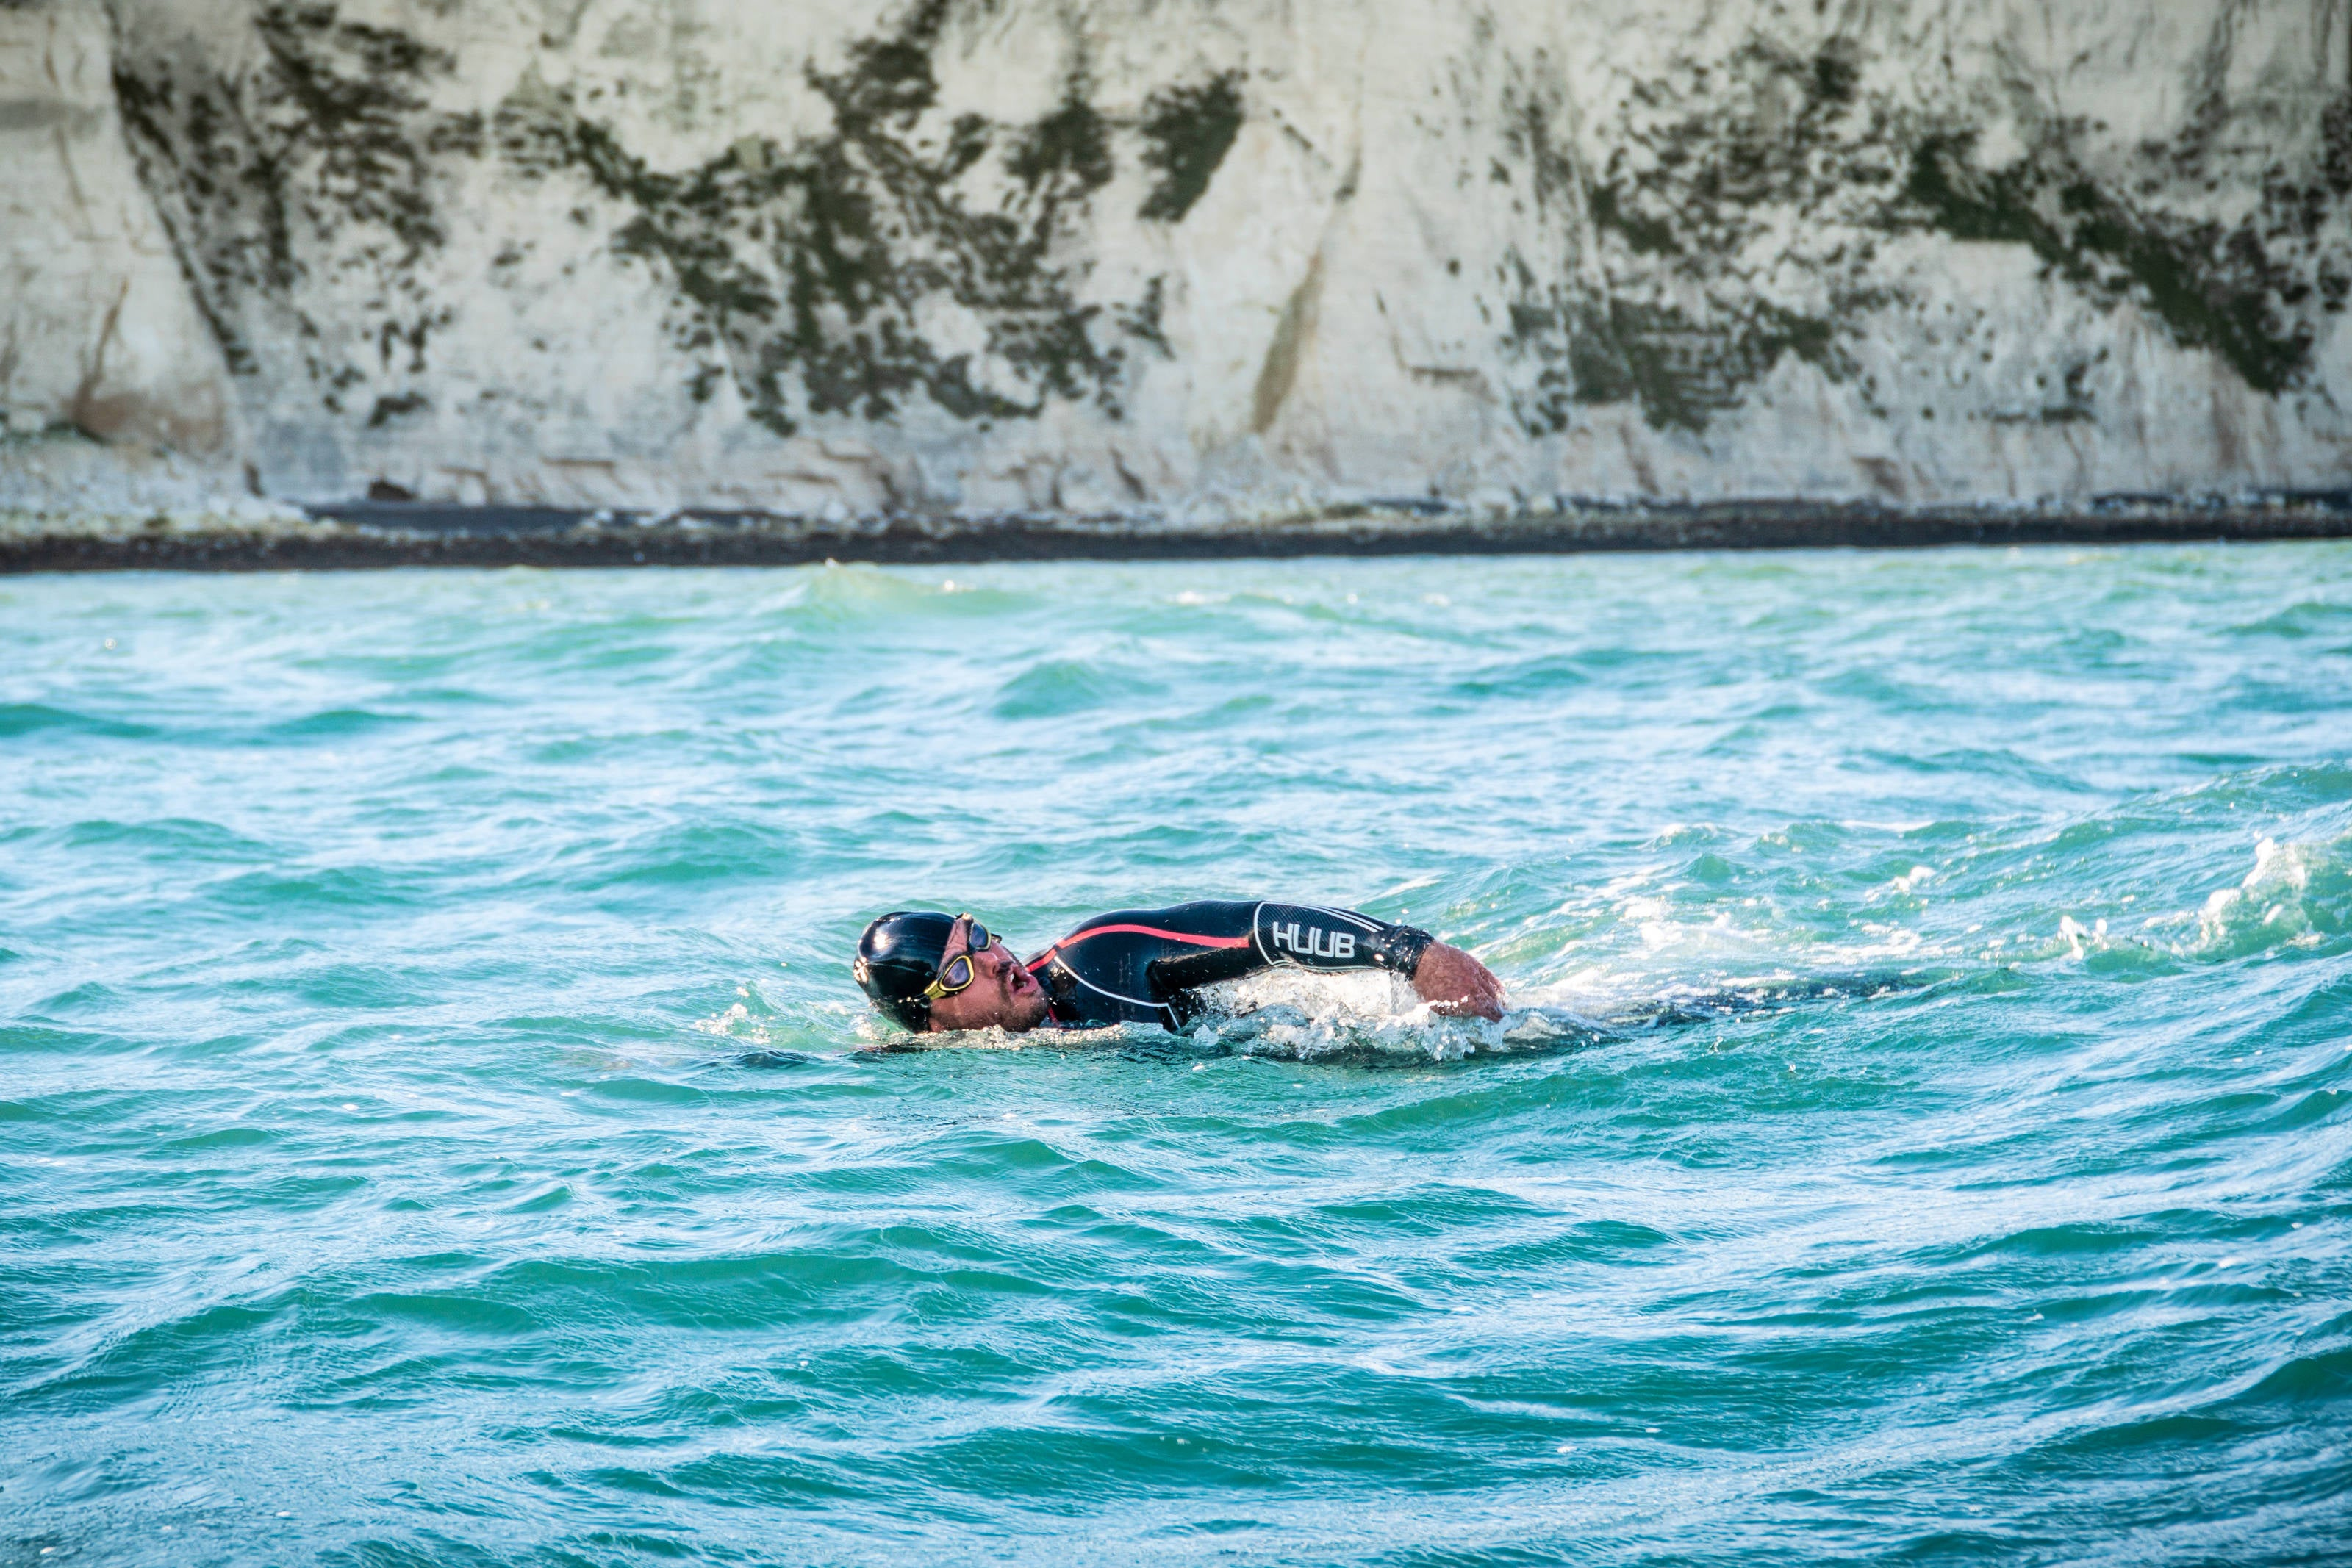 Ross Edgley: Great British Swim. Photo courtesy of Red Bull Media Pool